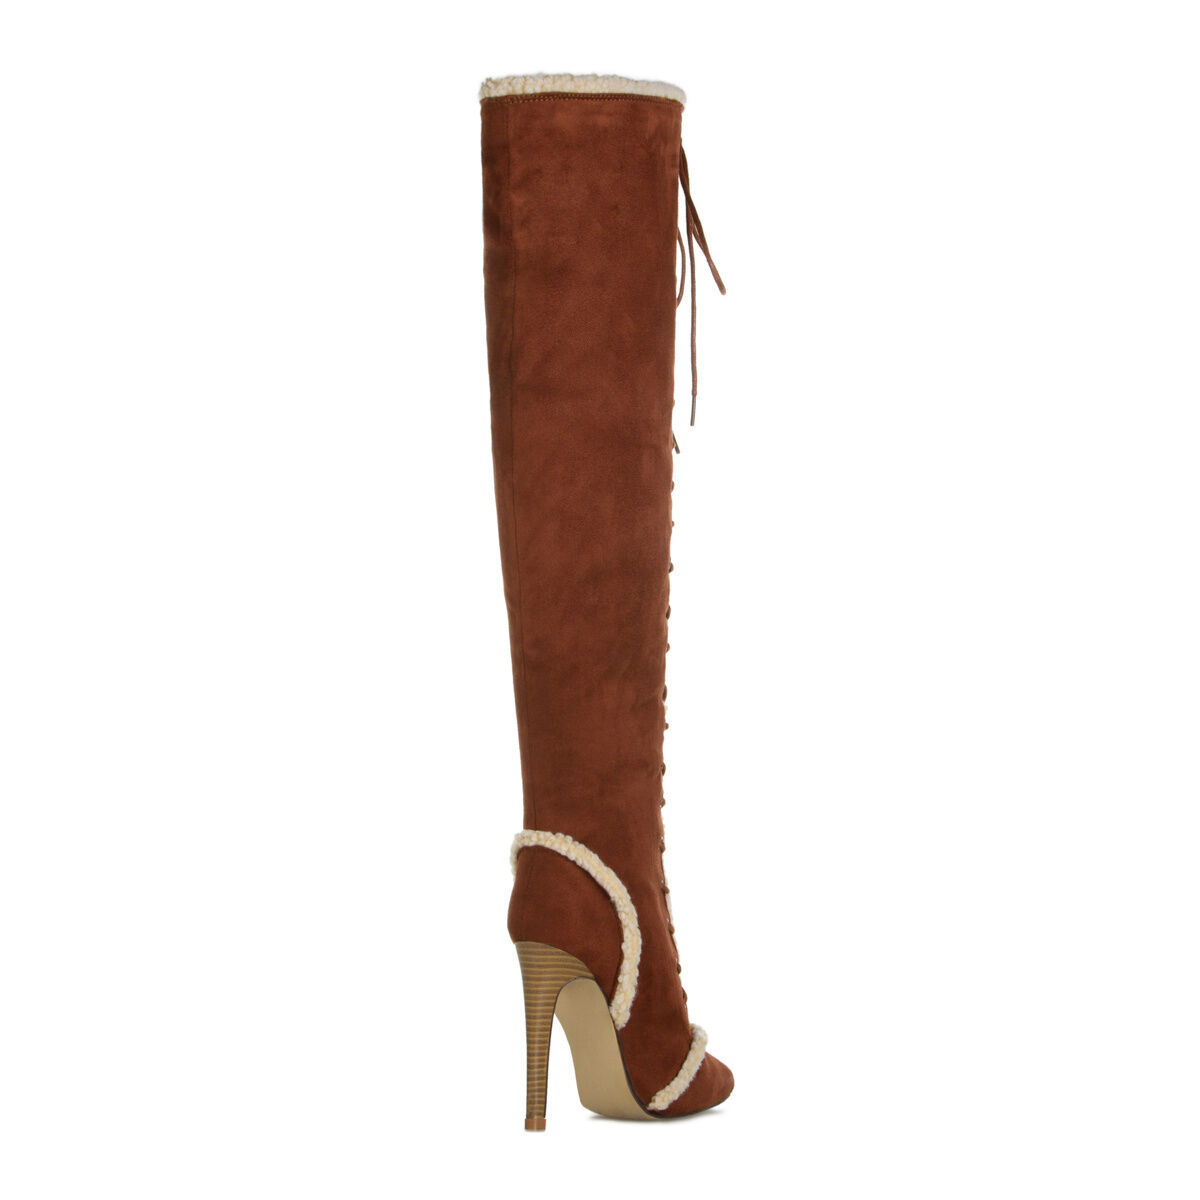 NEW Lace-up Pointed-Toe Over-the-Knee Stivali w/ Faux-Shearling Accents Size 8 8 Size efad08